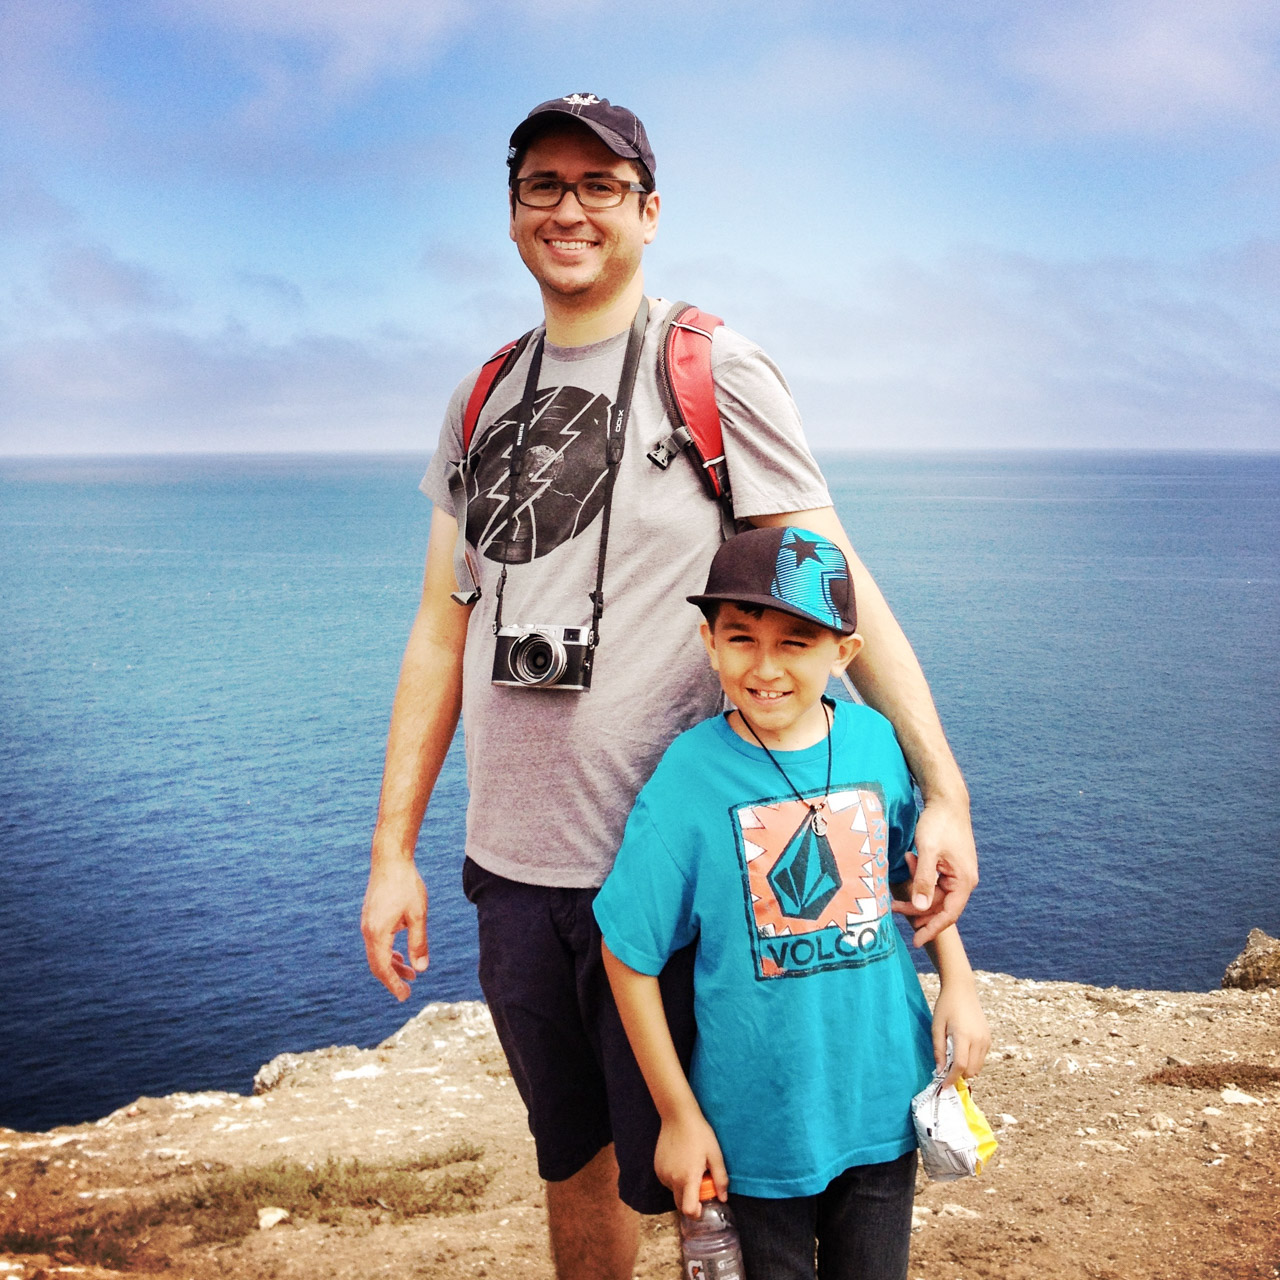 Gabe and Ethan on Anacapa Island. Let's Photo Trip!